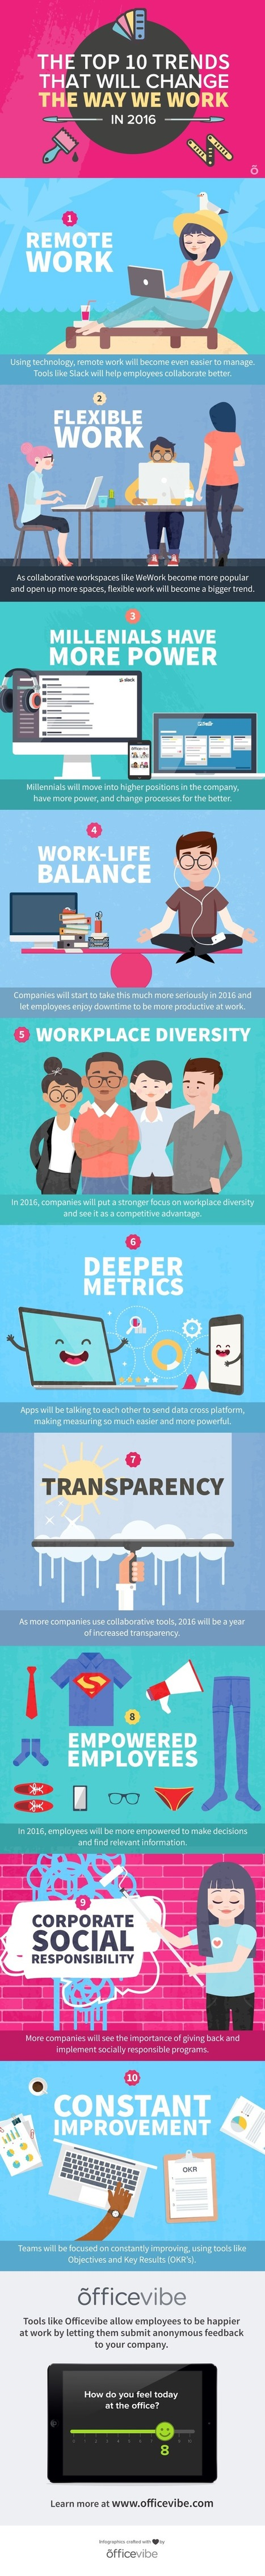 The Top 10 Trends That Will Change The Way We Work in 2016 (Infographic) | e-learning-ukr | Scoop.it